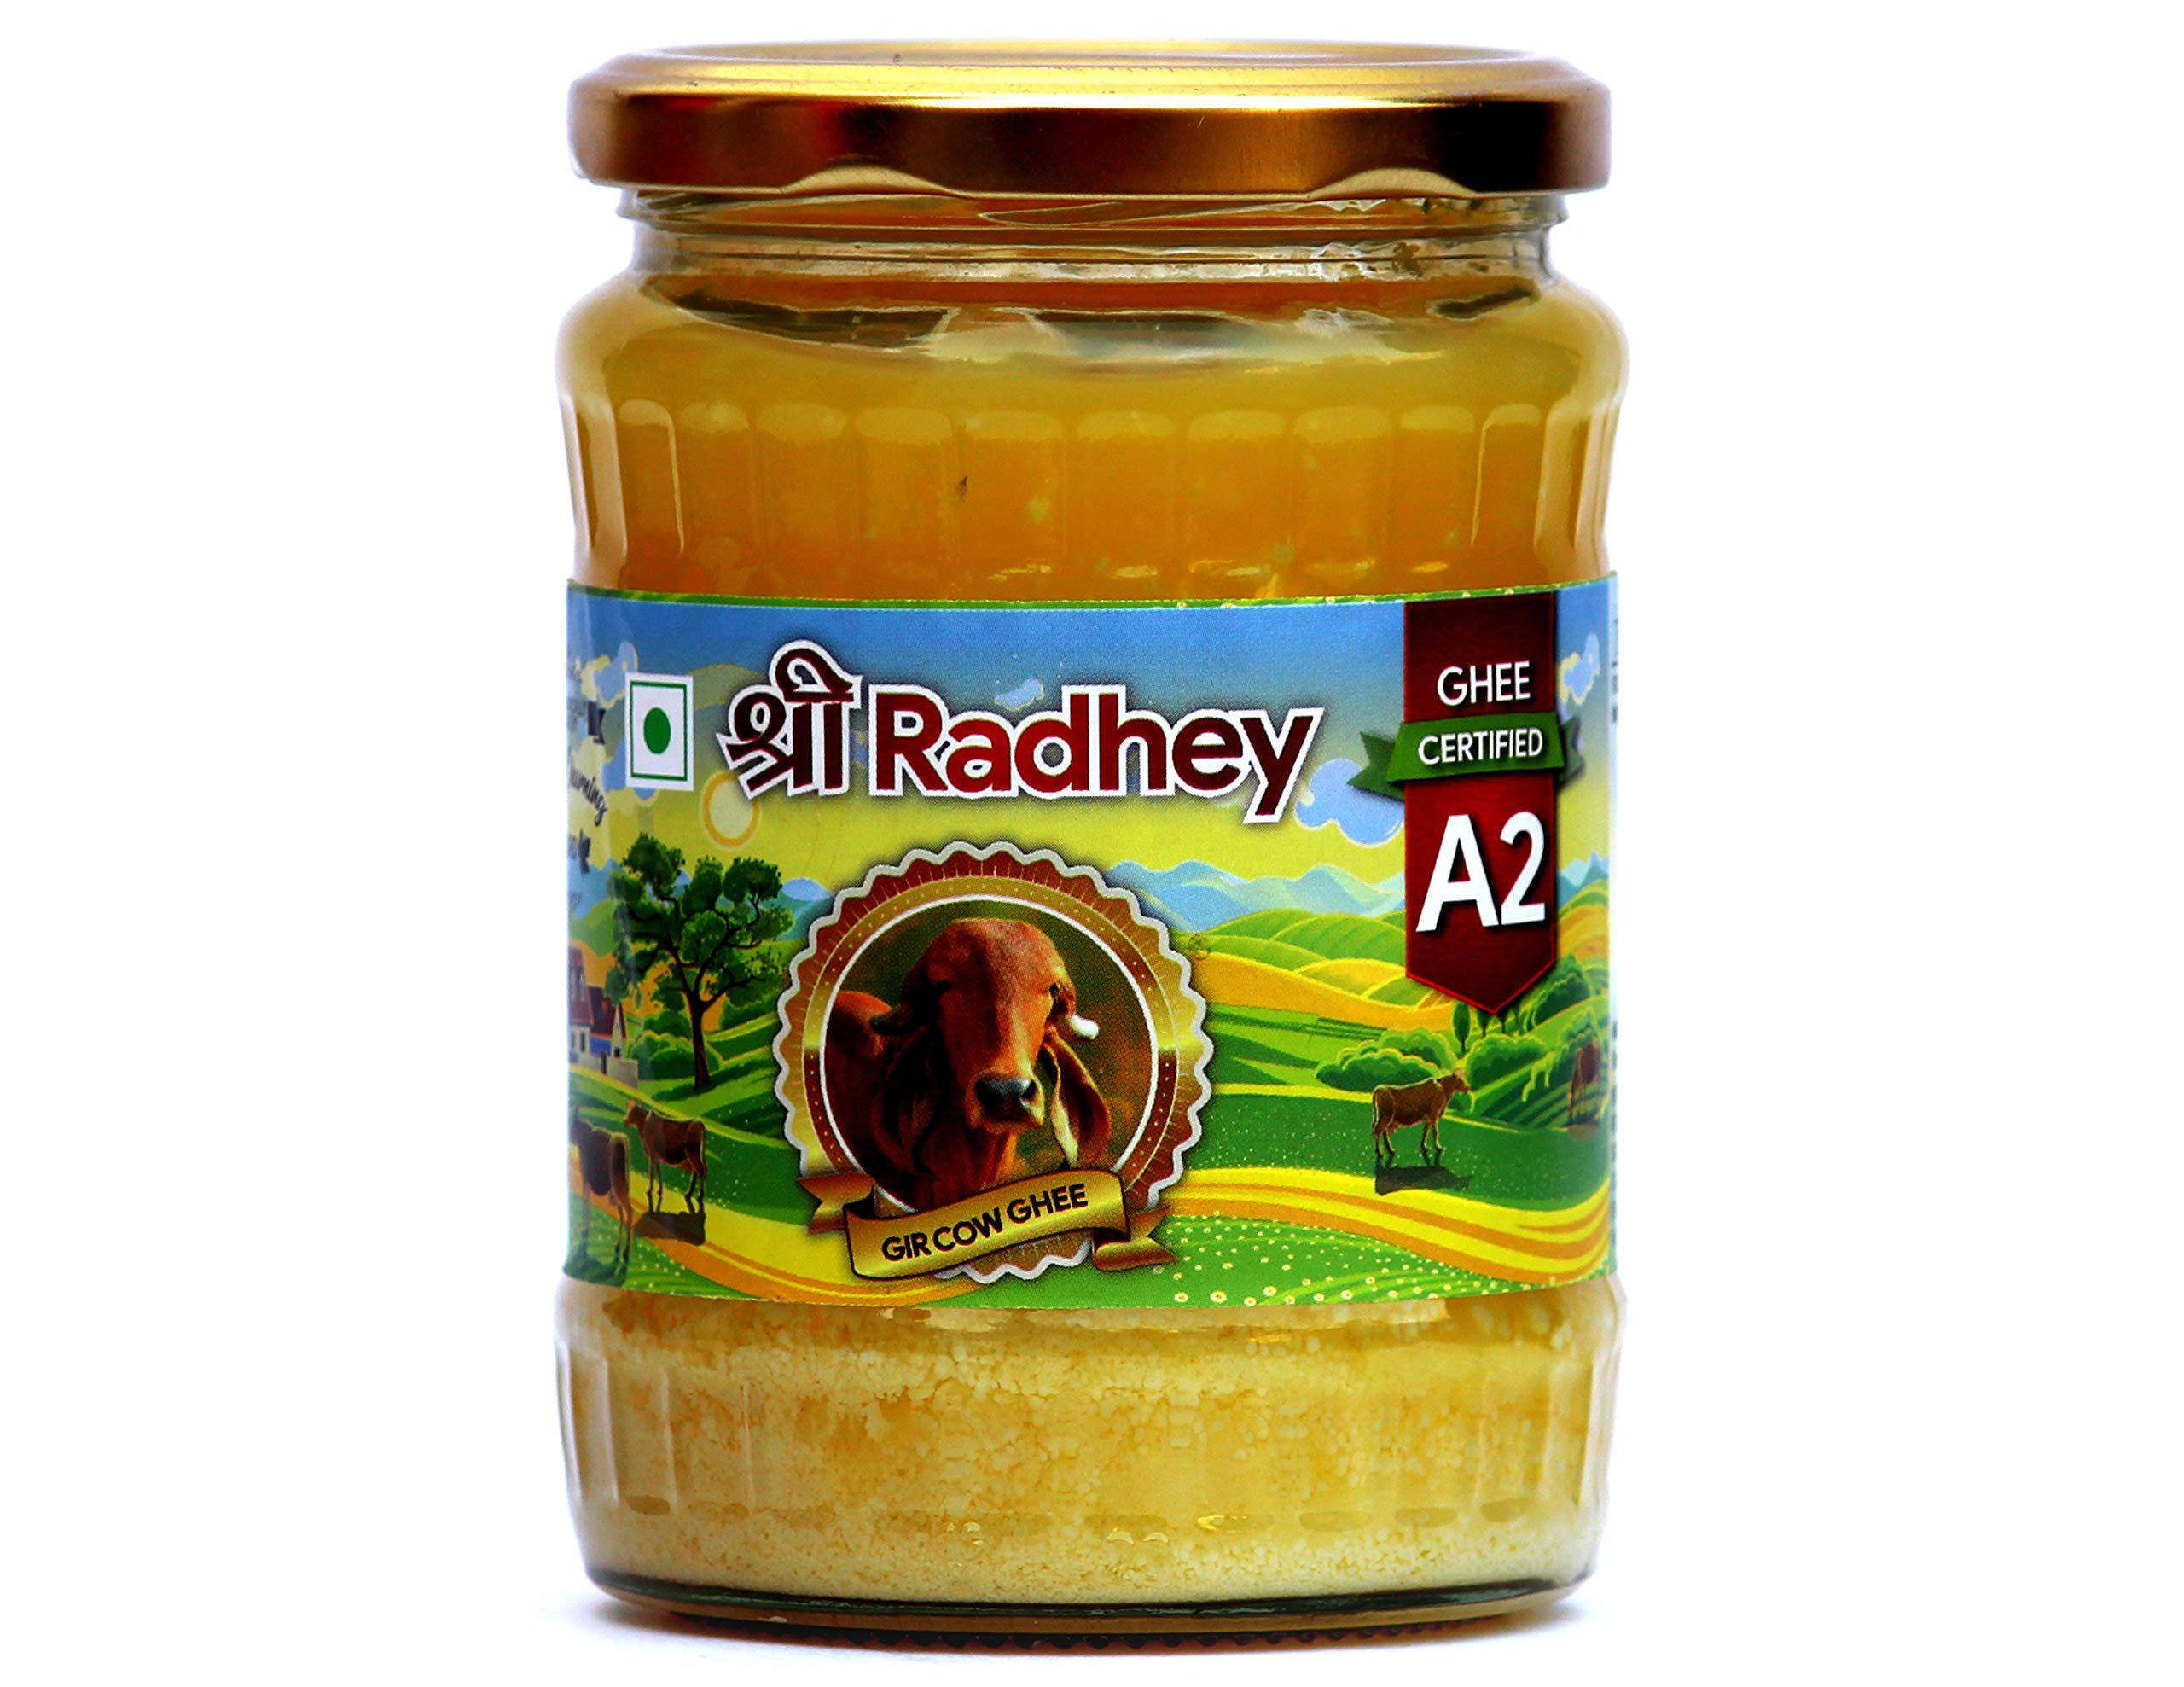 Shree Radhey Certified A2 Gir Cow Ghee - Clarified Butter - 100 % Grass Fed- (Traditionaly Churned) 14 oz (400 gm)) by Shree Radhey (Image #1)